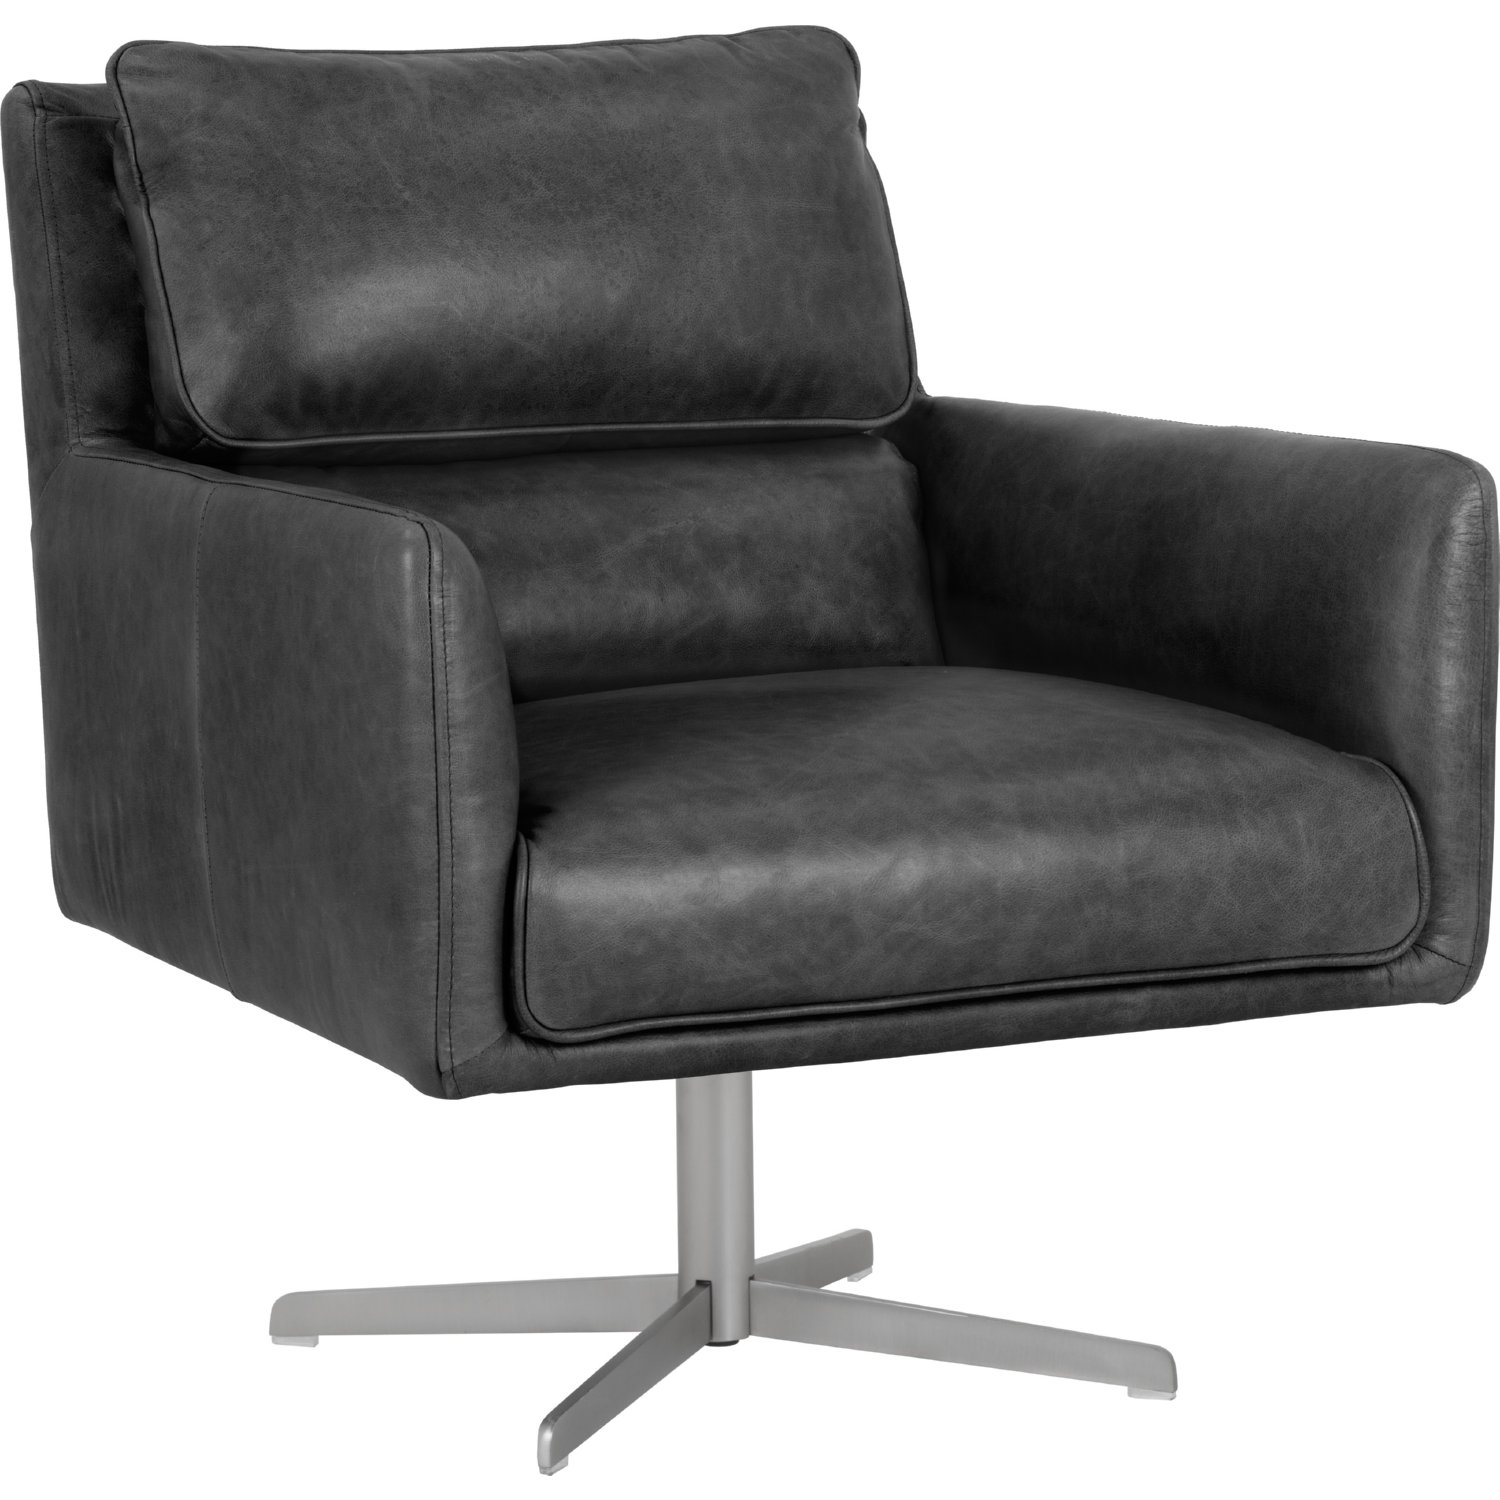 Fantastic Easton Swivel Accent Chair In Marseille Black Leather By Sunpan Ncnpc Chair Design For Home Ncnpcorg